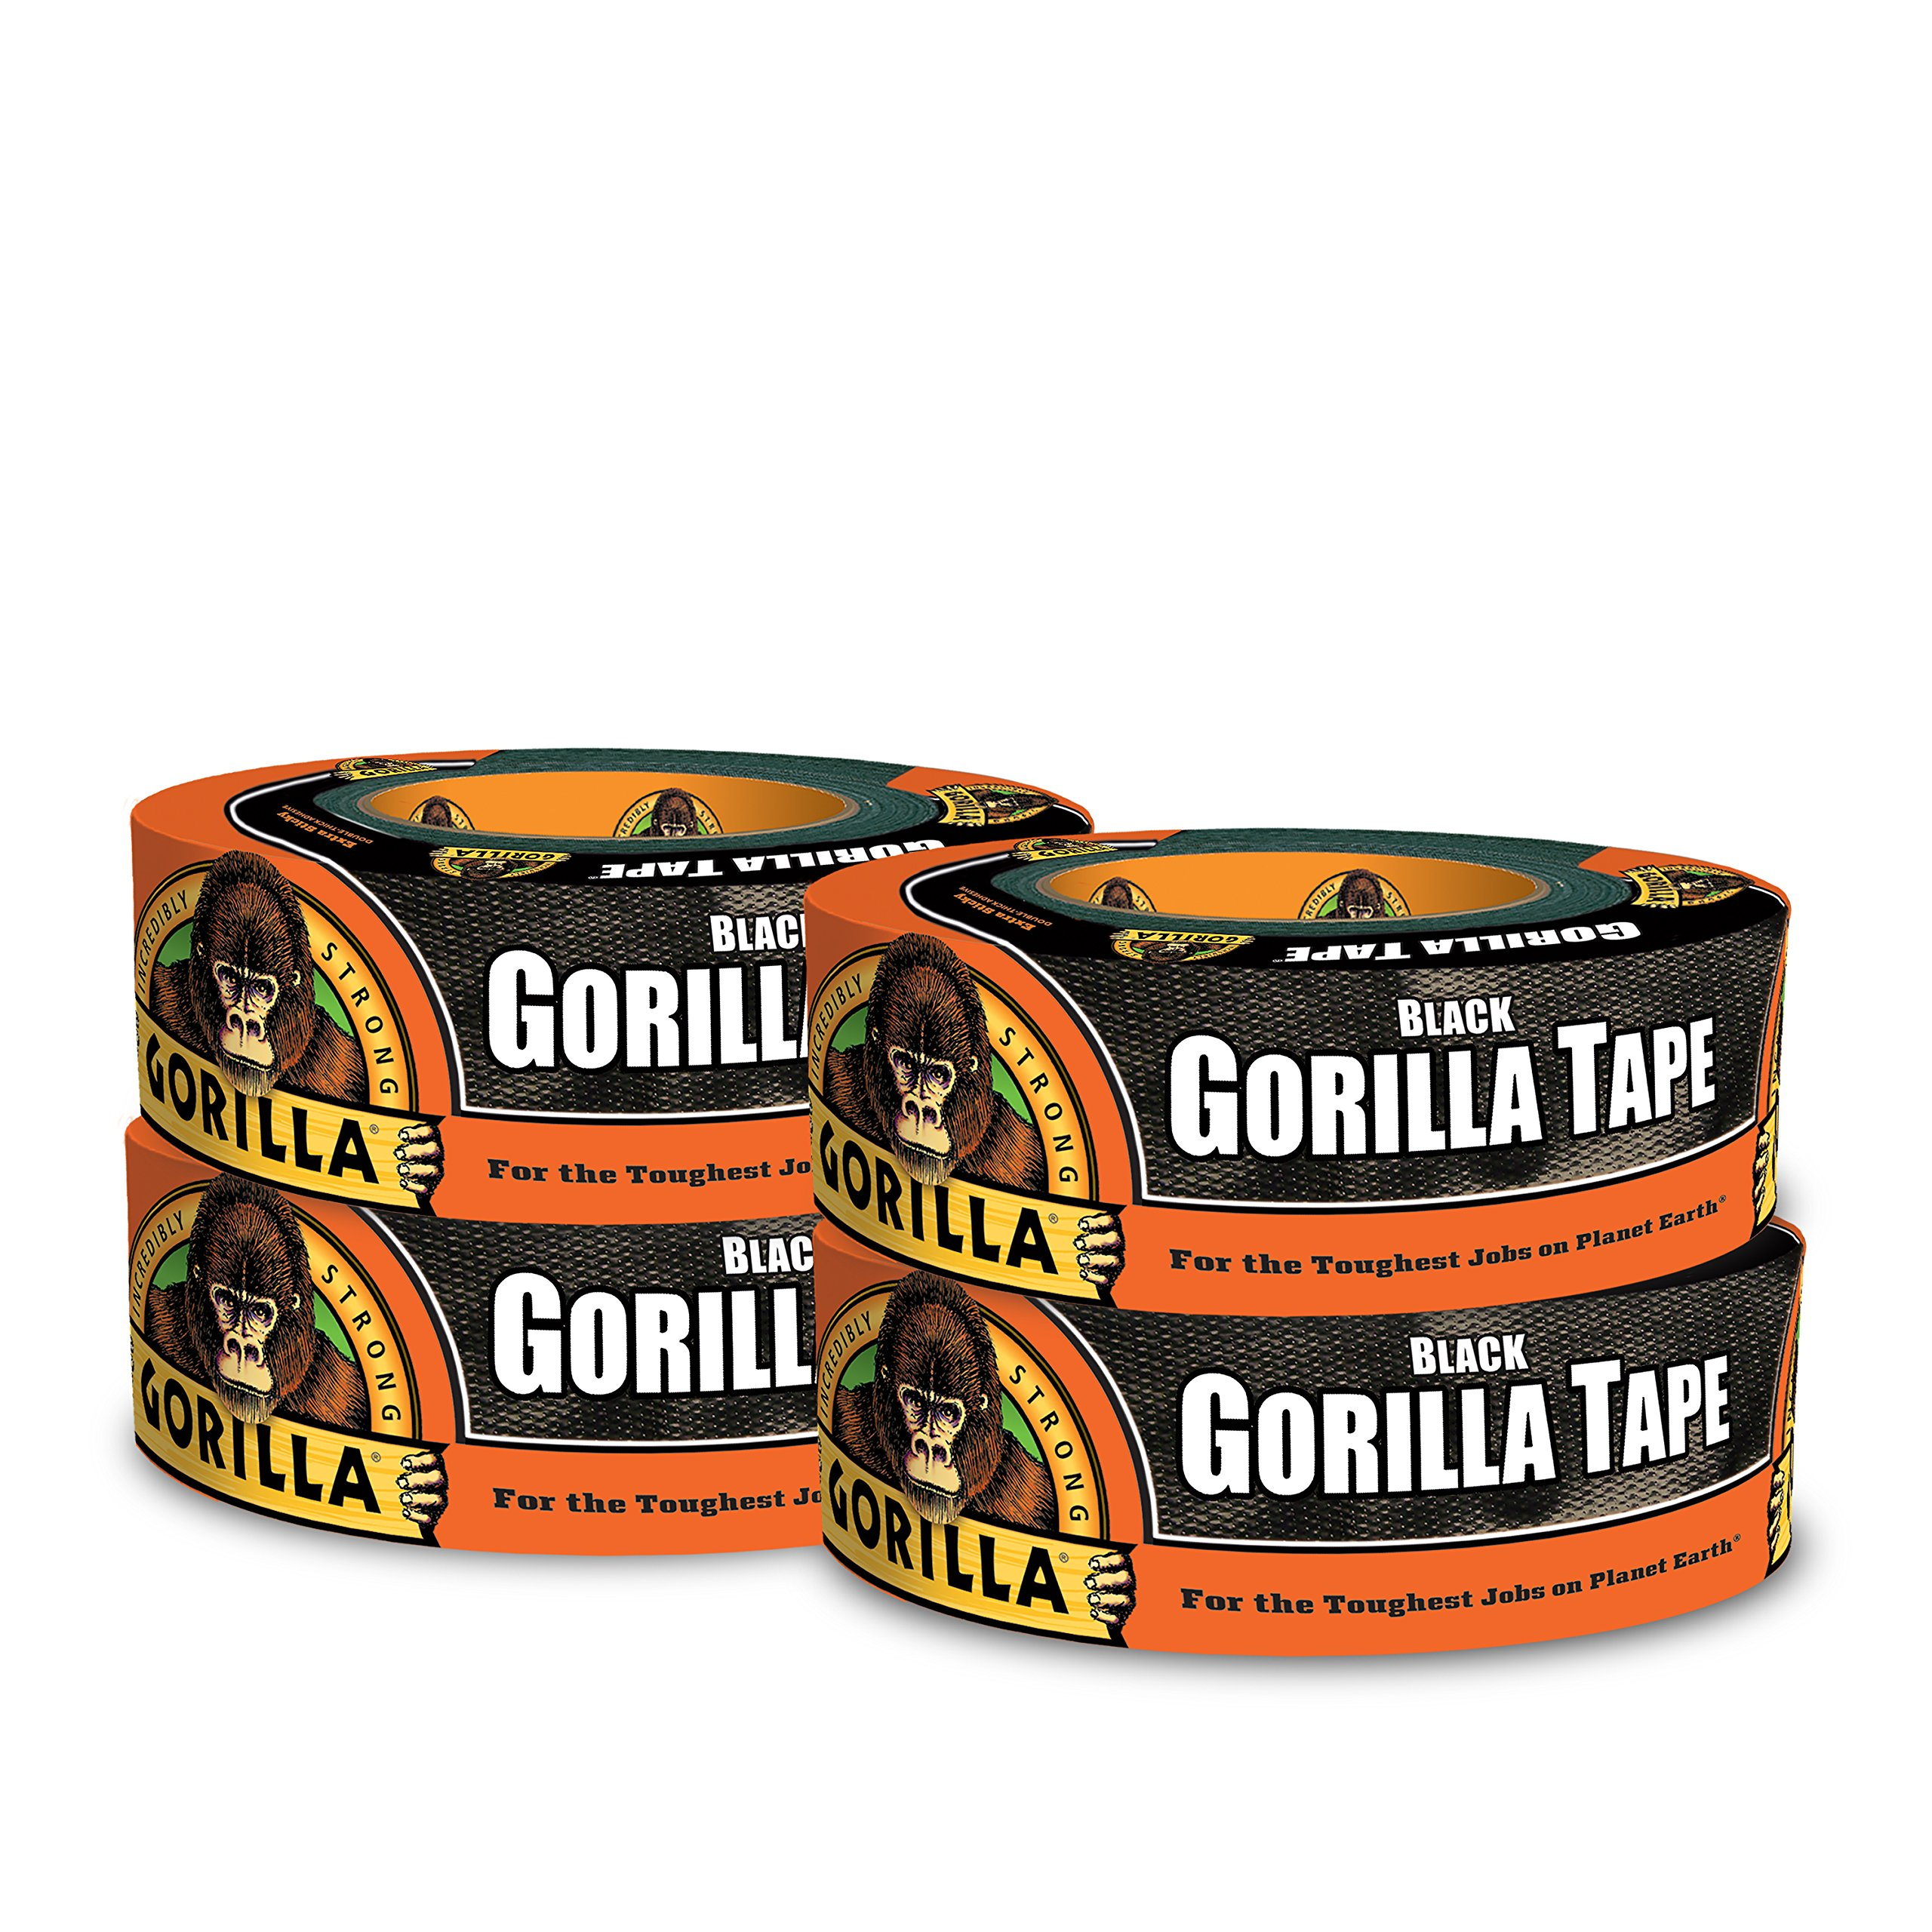 Gorilla Tape, Black Duct Tape, 1.88'' x 35 yd, Black, (Pack of 4)